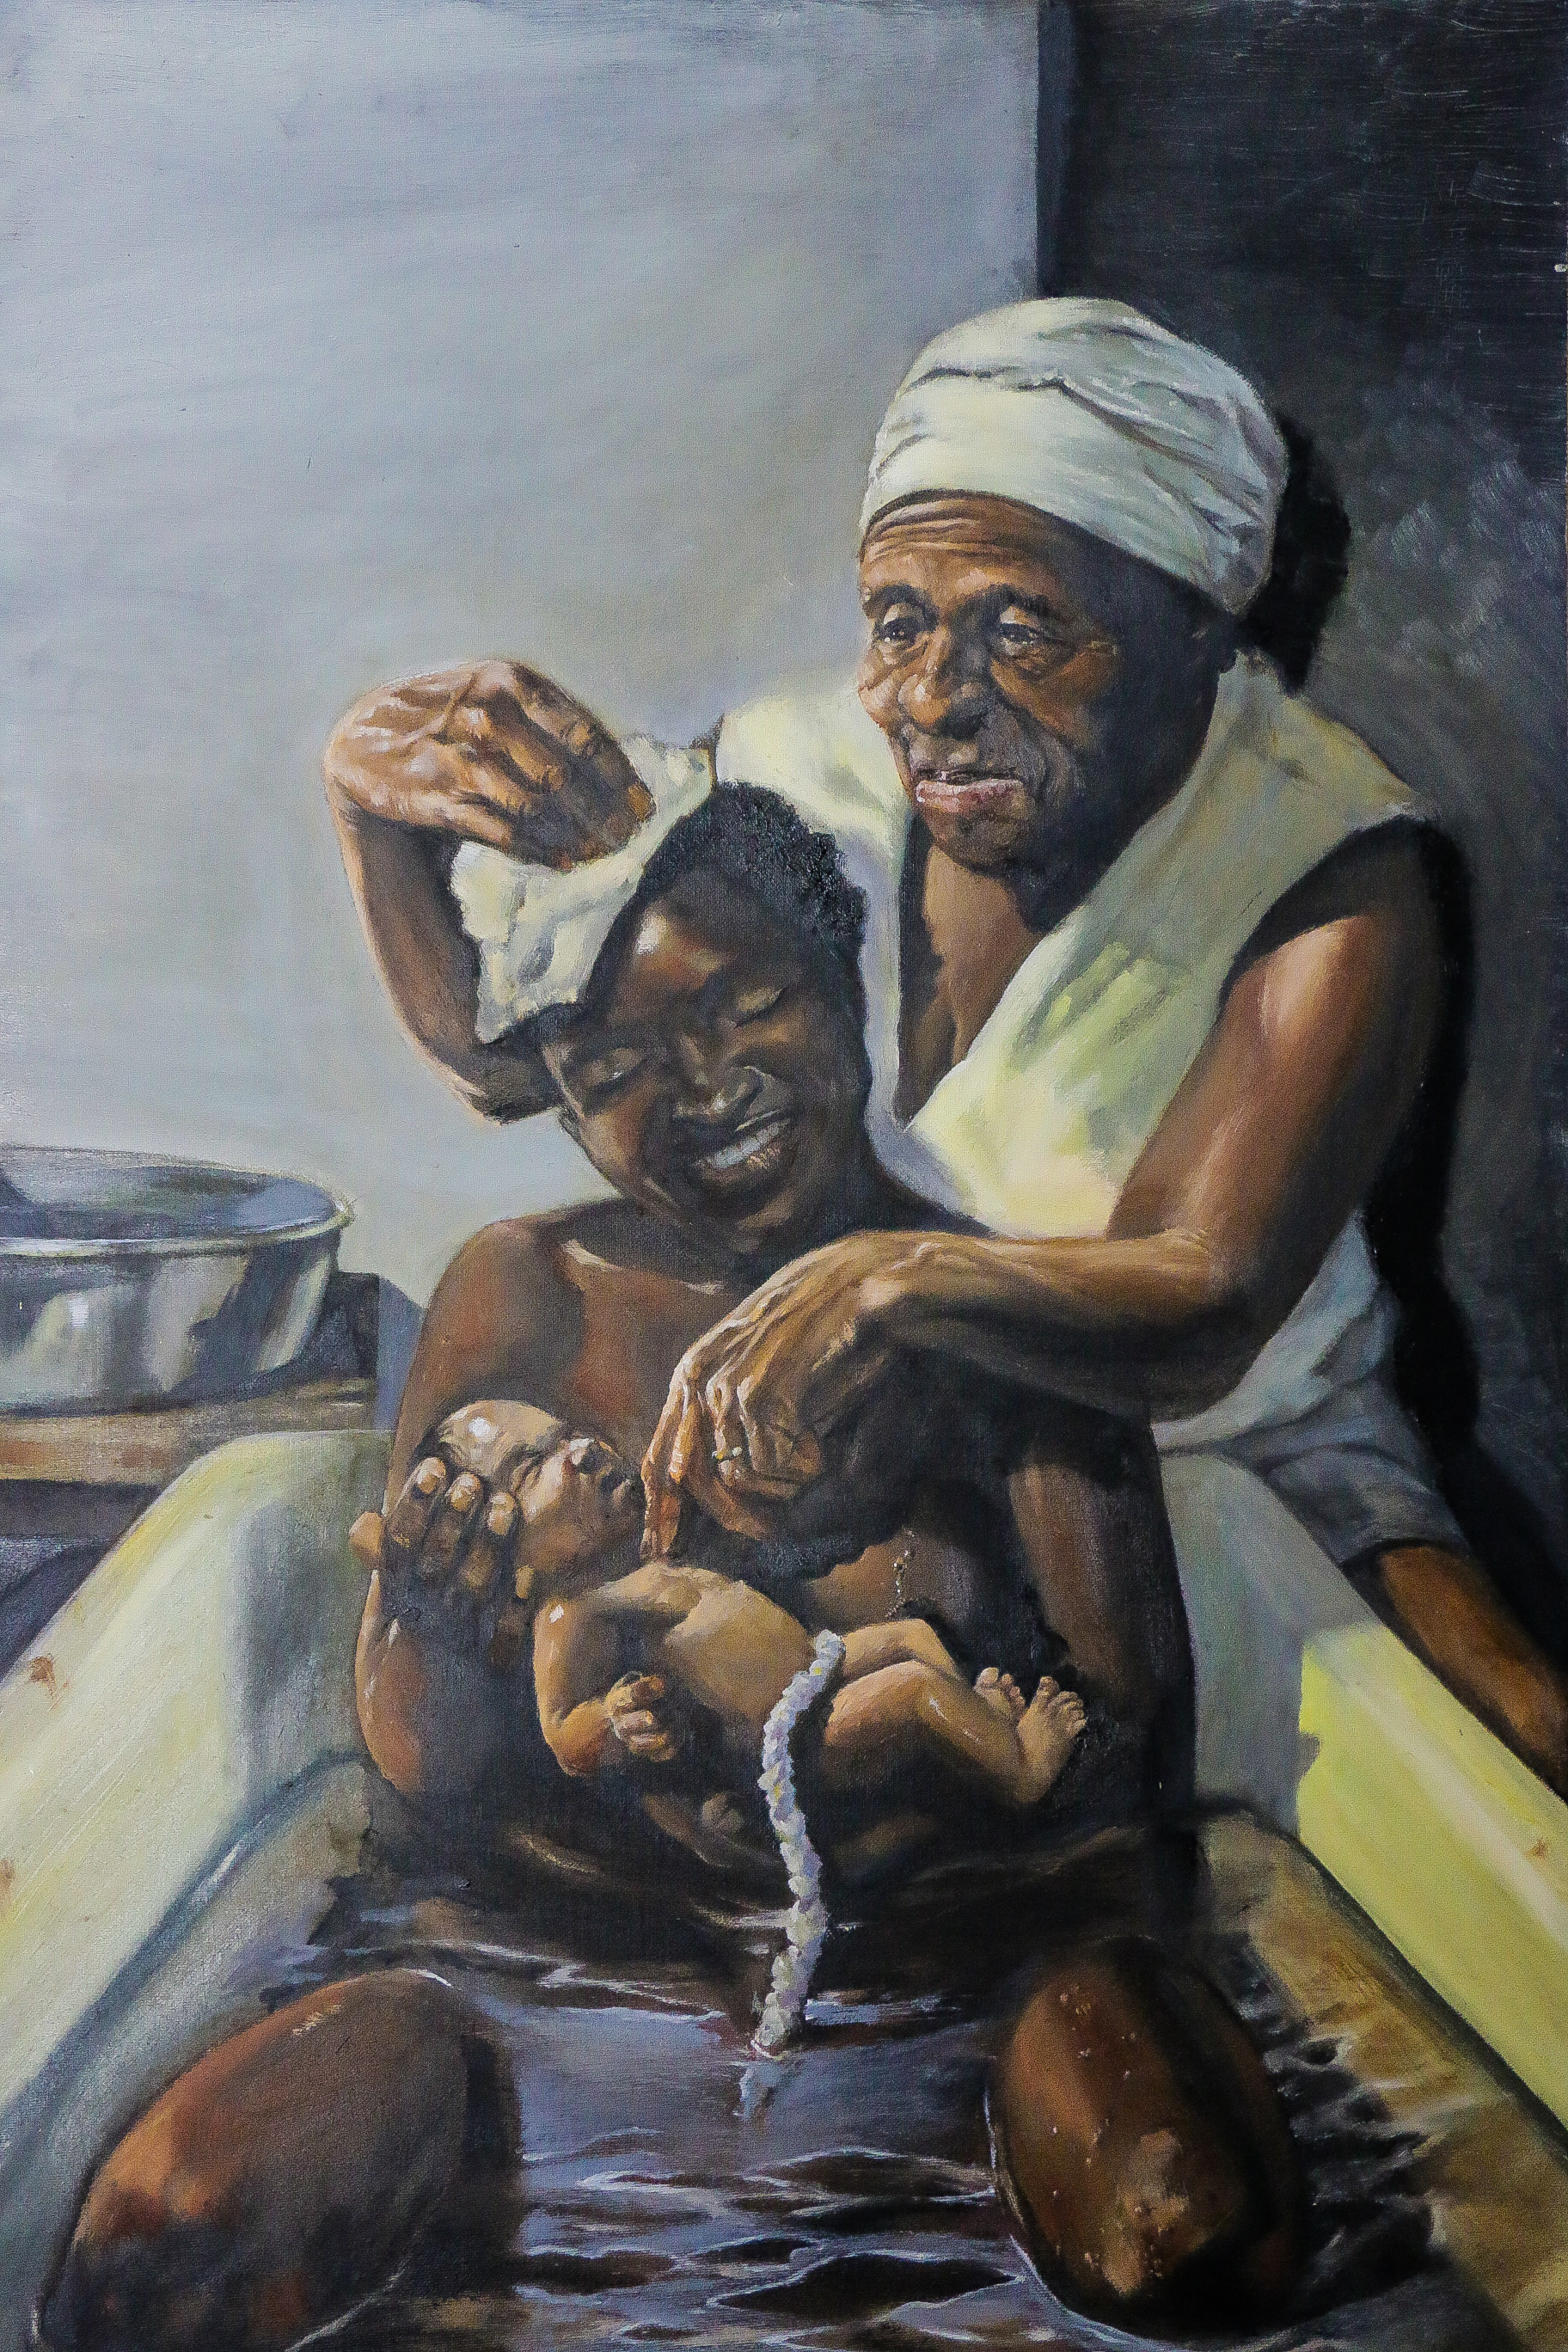 '3 Generations, by Durelle Williams, oil on canvas. 2017